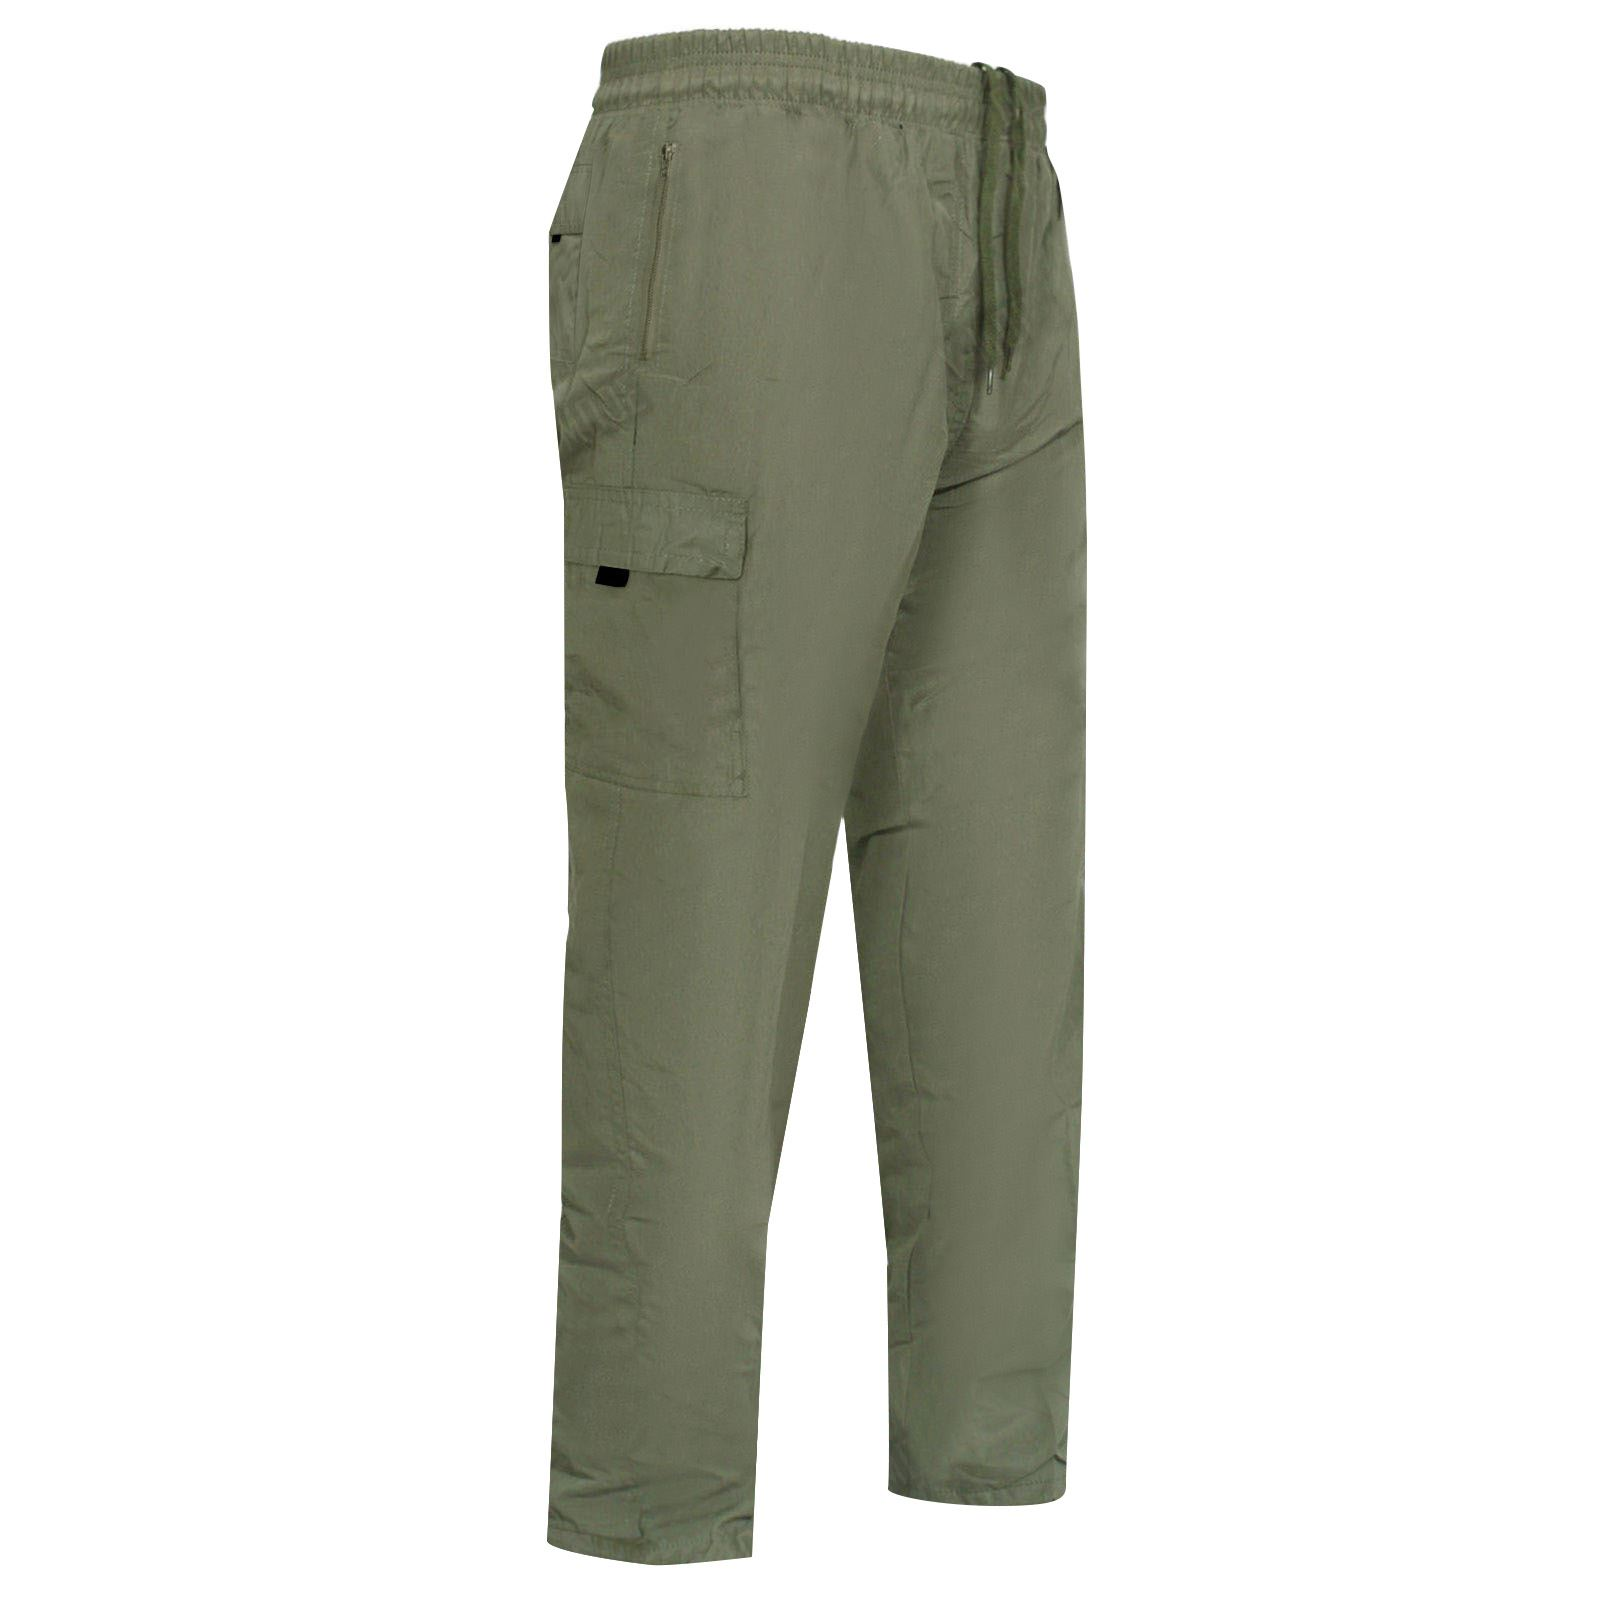 Combat Trousers and Army Combat Shorts from Surplus and outdoors, we have a great choice in Combat trousers, new and used, all sorts of colours. Combat Trousers and Shorts. We have a Fantastic Selection of Combat Trousers, Army Combat Shorts, Lined Walking Trousers Starav walking / hiking black or olive trousers by Highlander Black small.